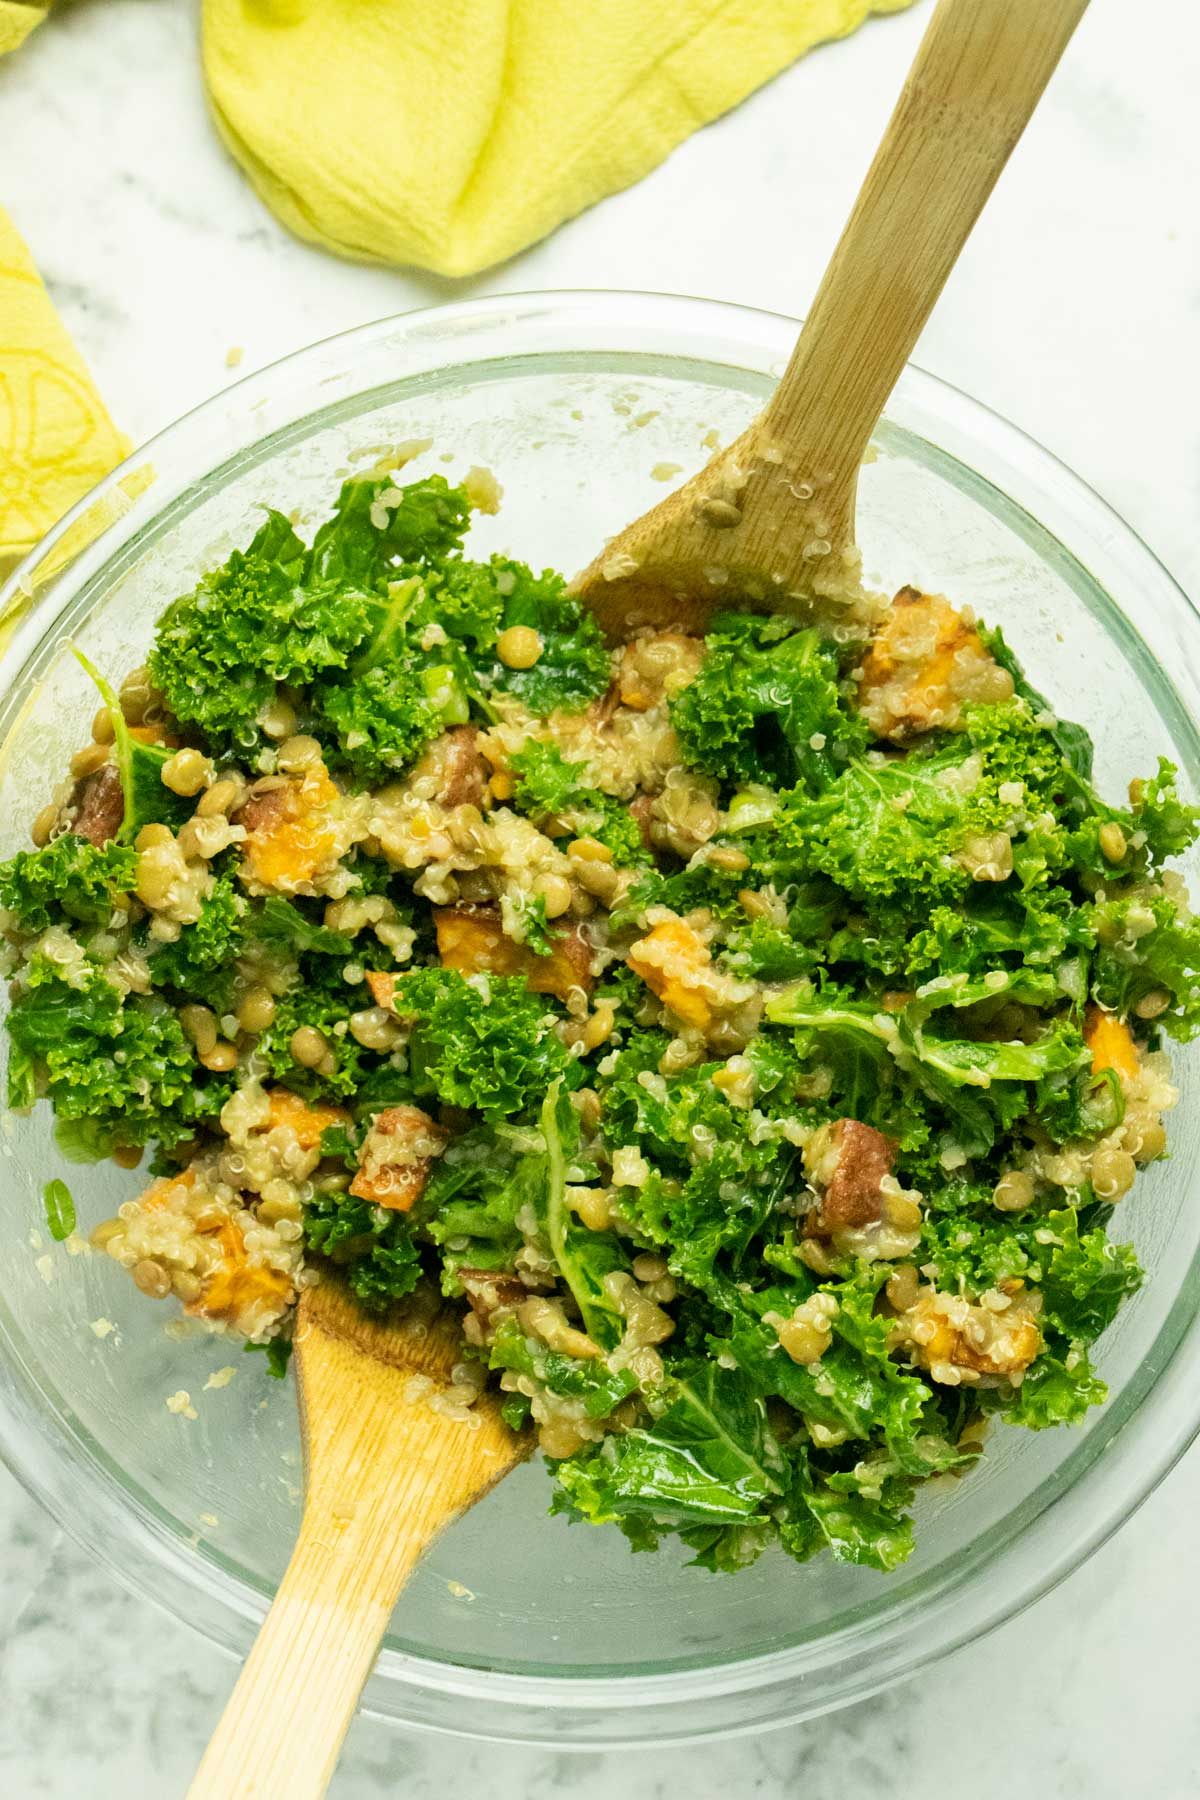 lentil quinoa kale salad tossed together in the mixing bowl